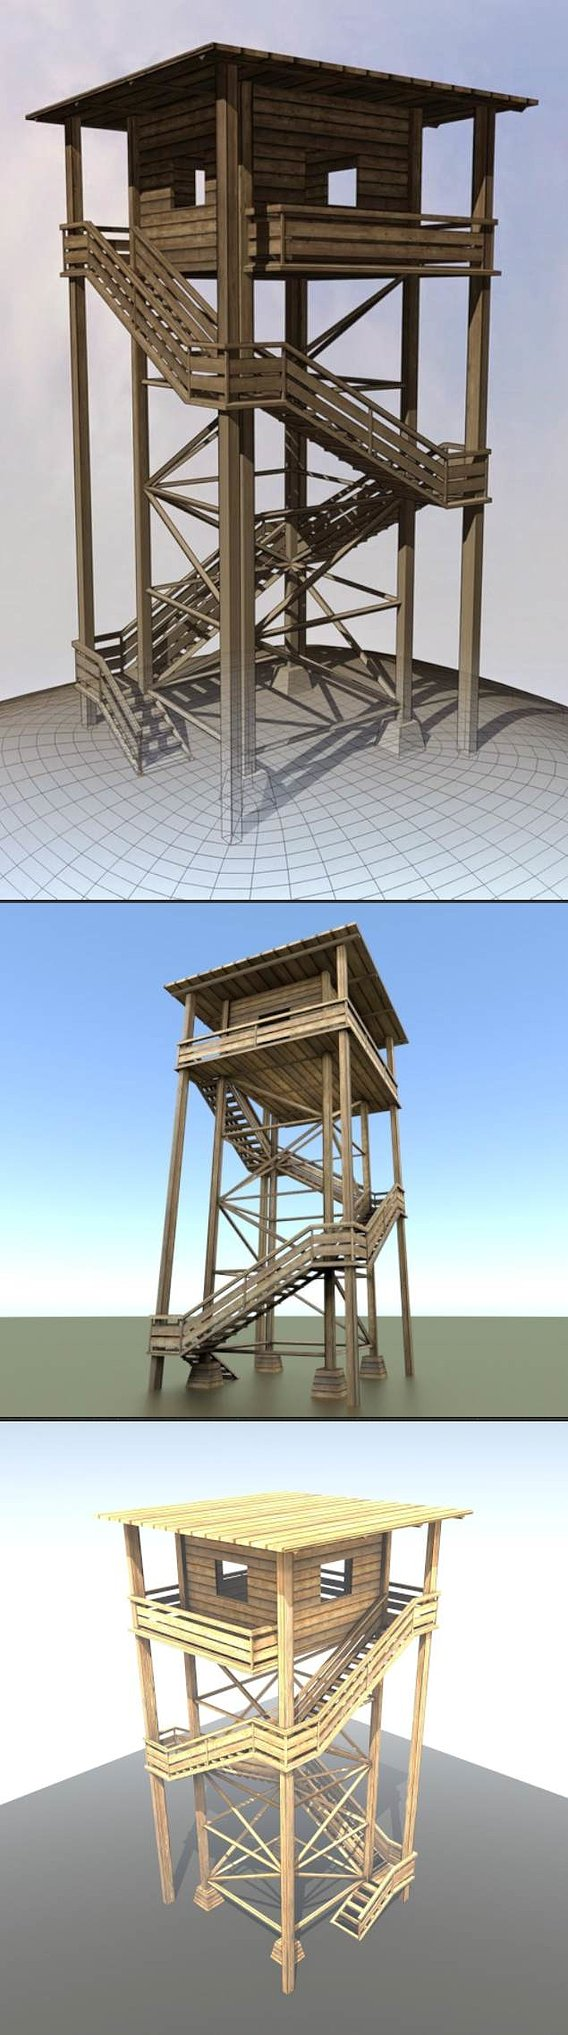 My old wooden watch tower (08.12.2010)